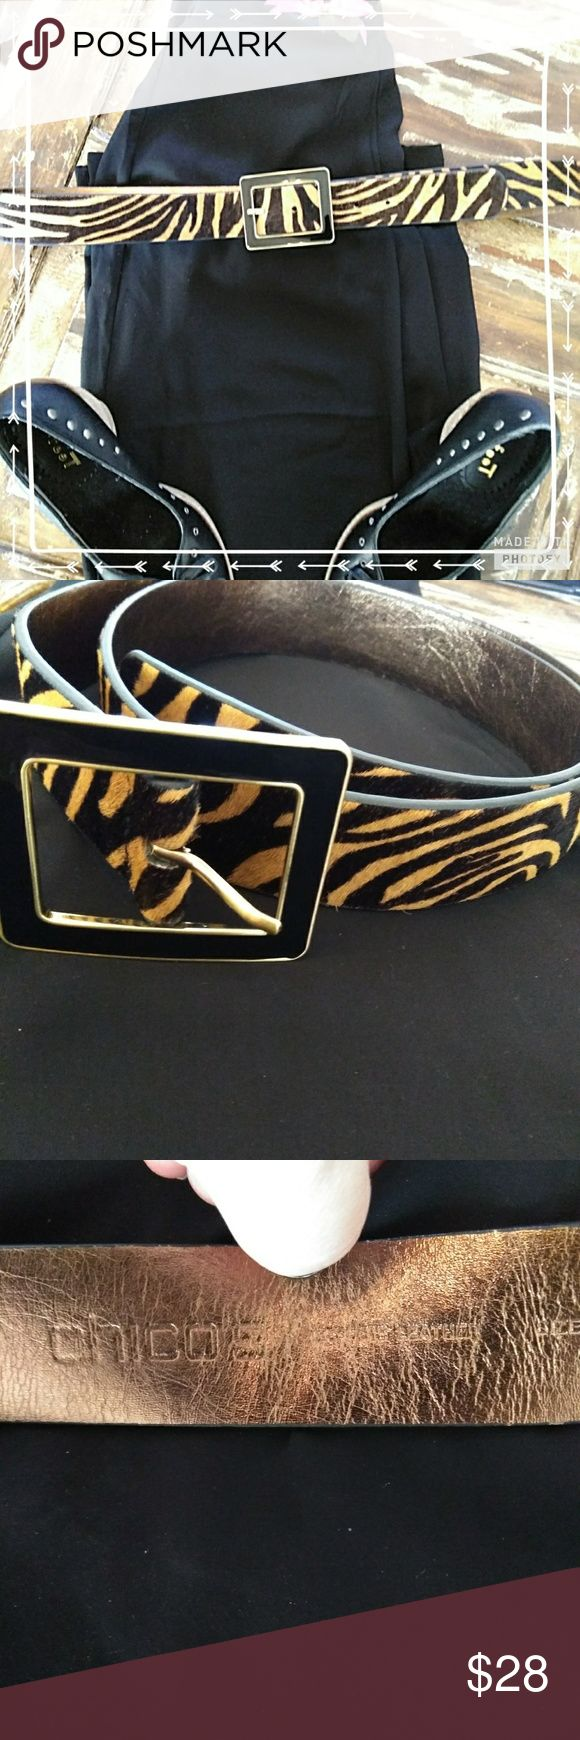 🎊 HP Wardrobe Goals 🎊 Chico's Animal Print Belt Chico's Leather Animal Print Belt Chico's Accessories Belts